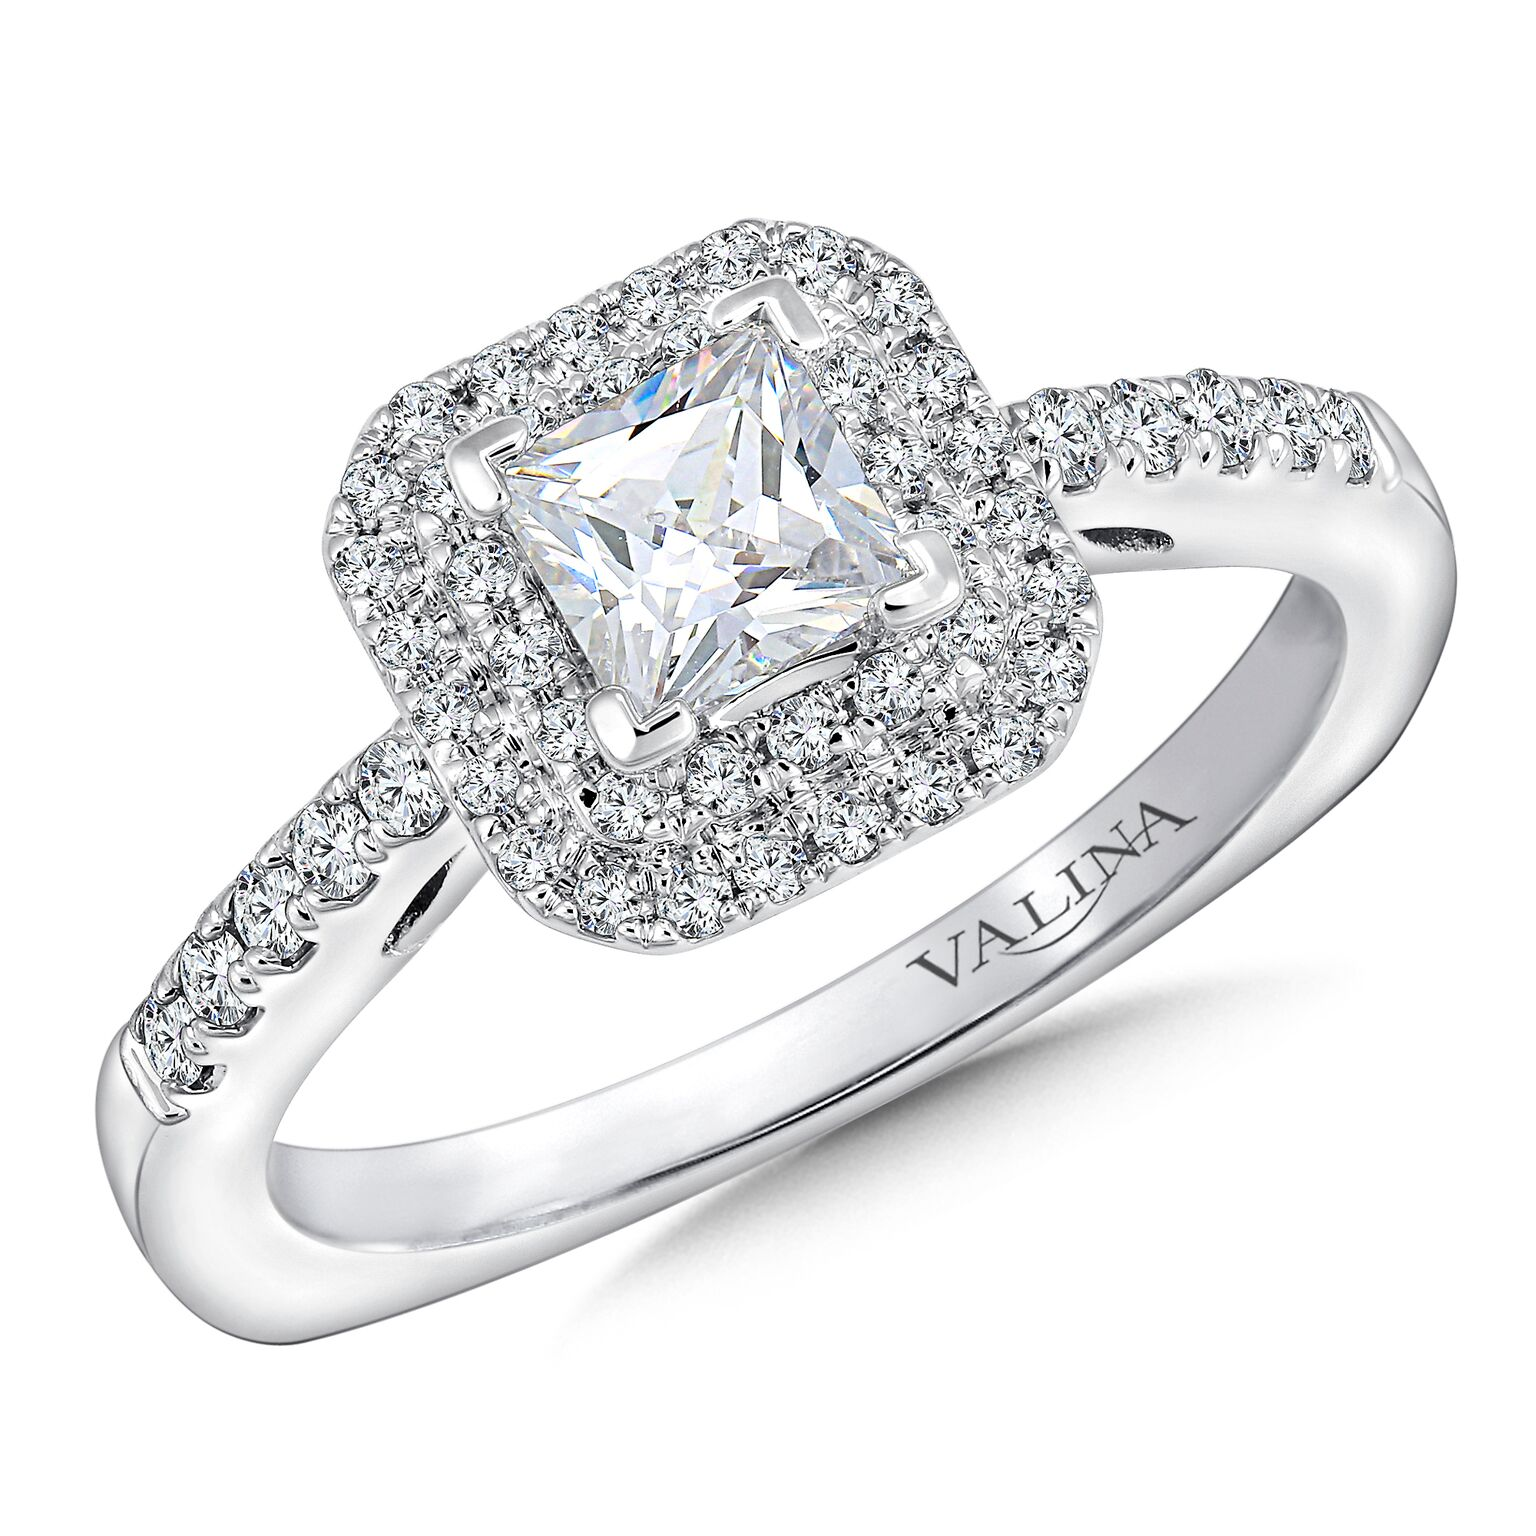 Princess Engagement Rings Dallas 3, Shira Diamonds